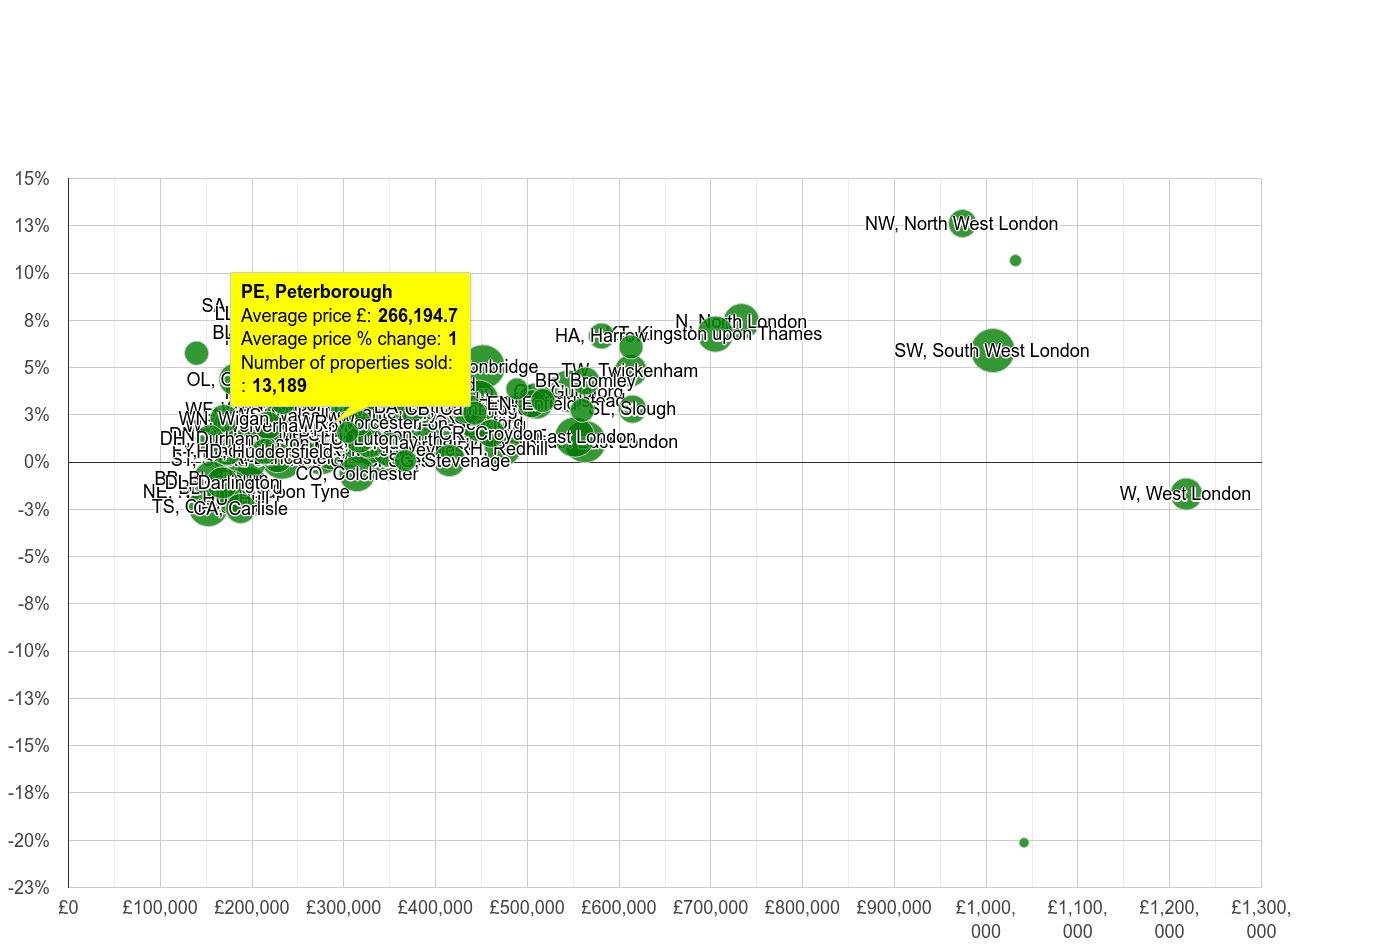 Peterborough house prices compared to other areas